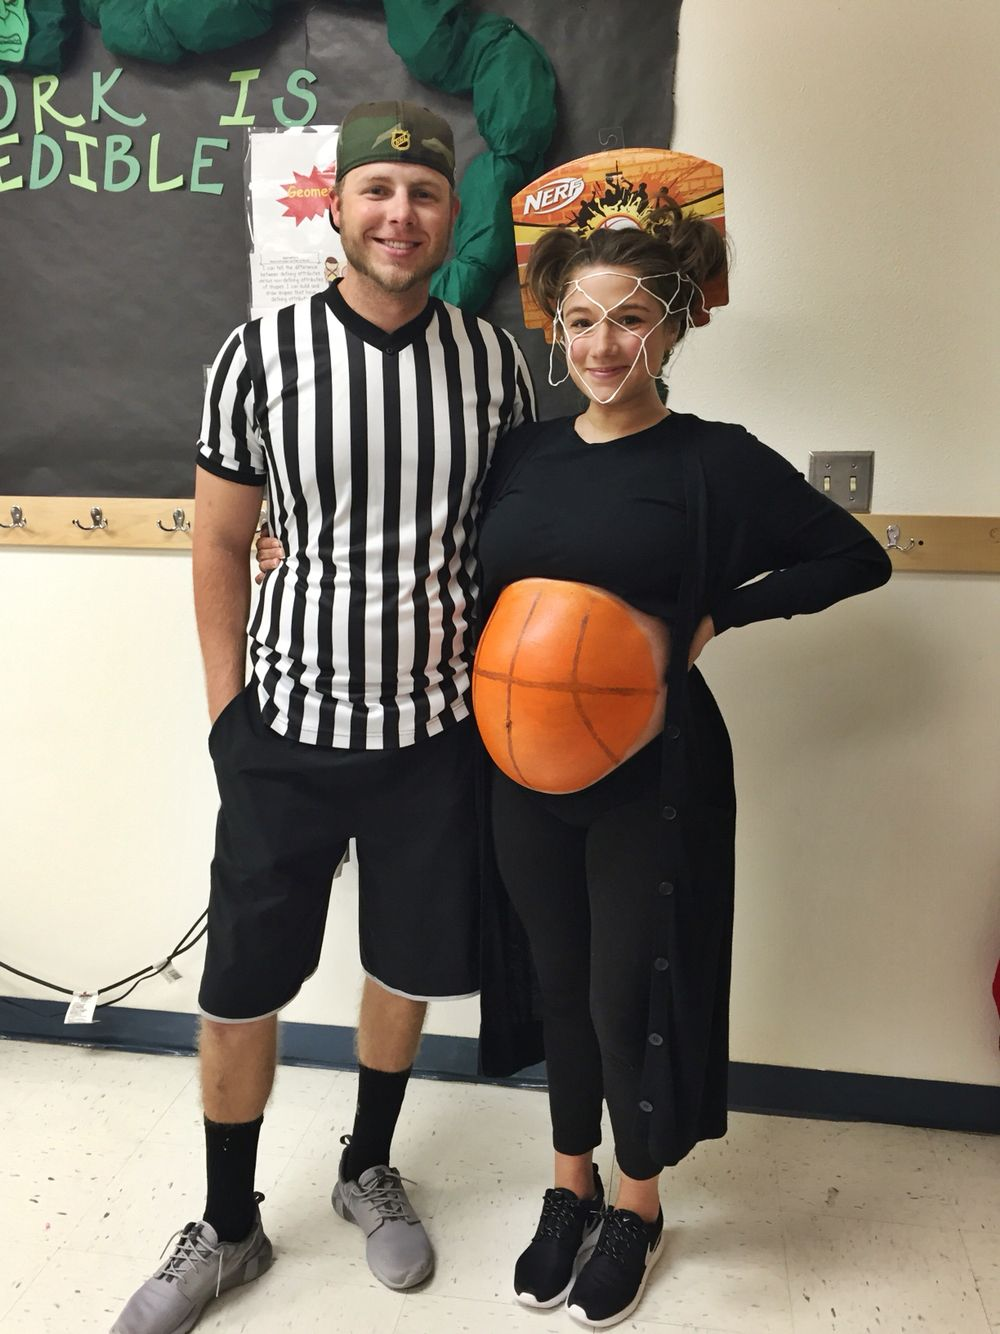 Couples maternity halloween costume basketball  sc 1 st  Pinterest & Couples maternity halloween costume basketball | holiday. celebrate ...